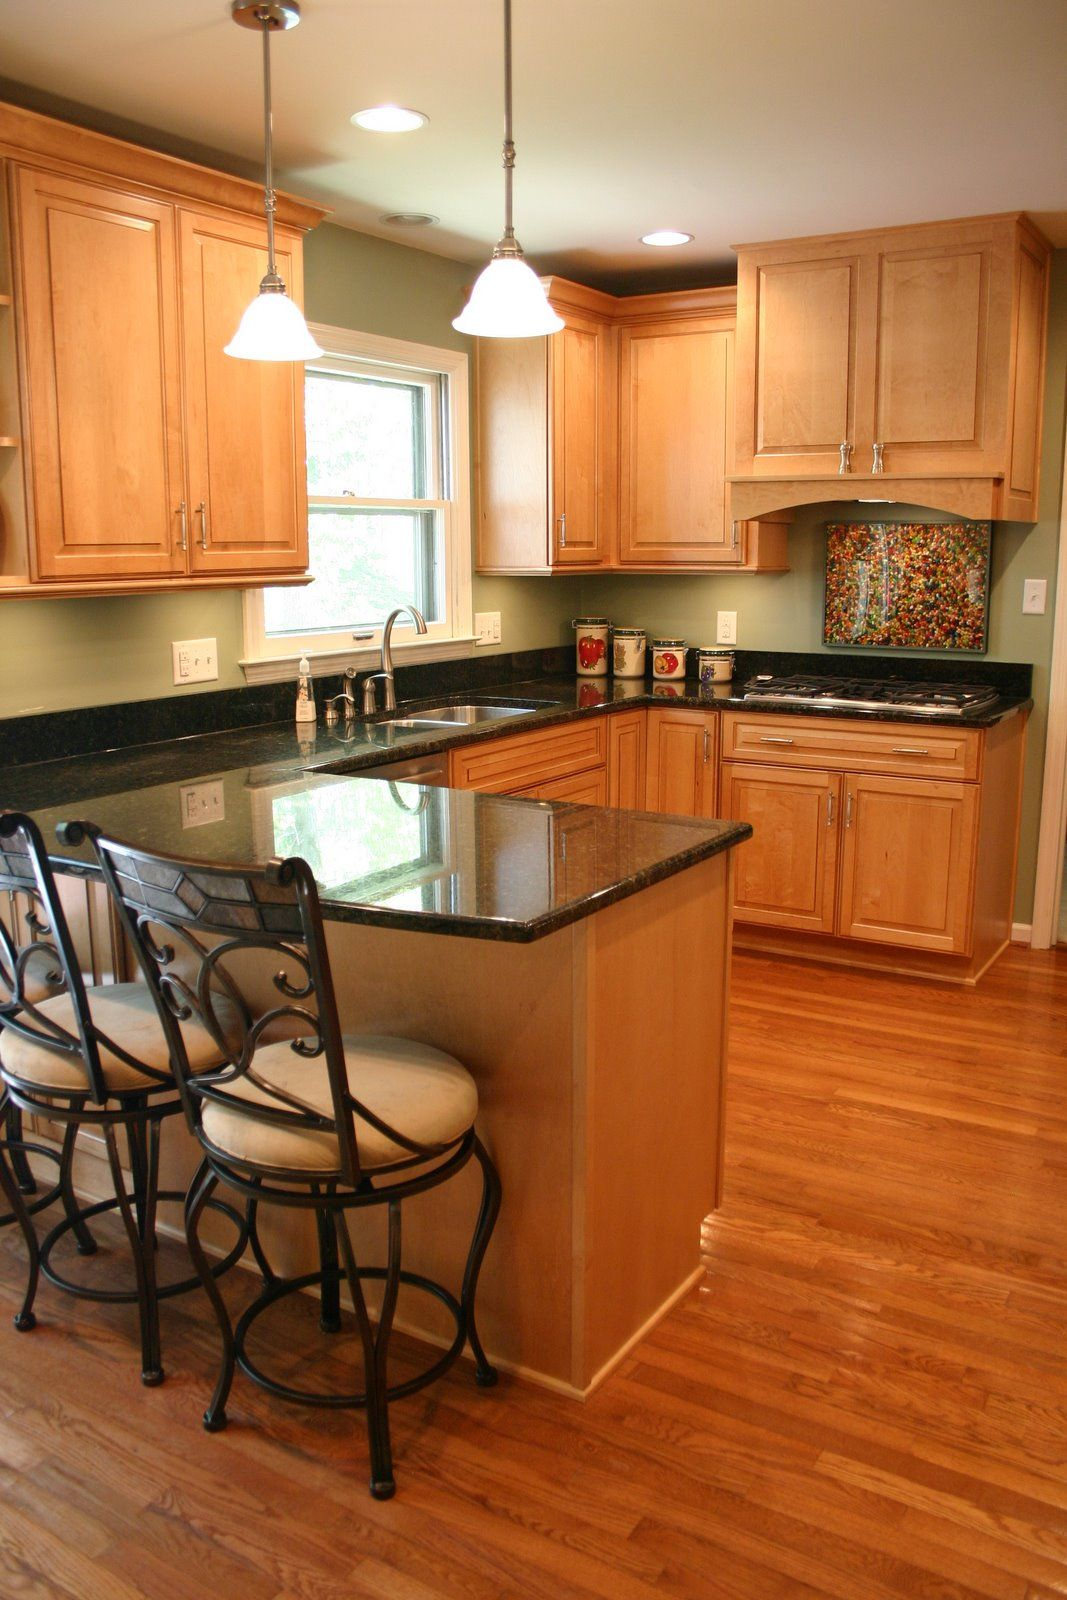 Rustic Vinyl Floor Coloring That Goes With Golden Oak Wood ... on Granite Colors That Go With Maple Cabinets  id=53199